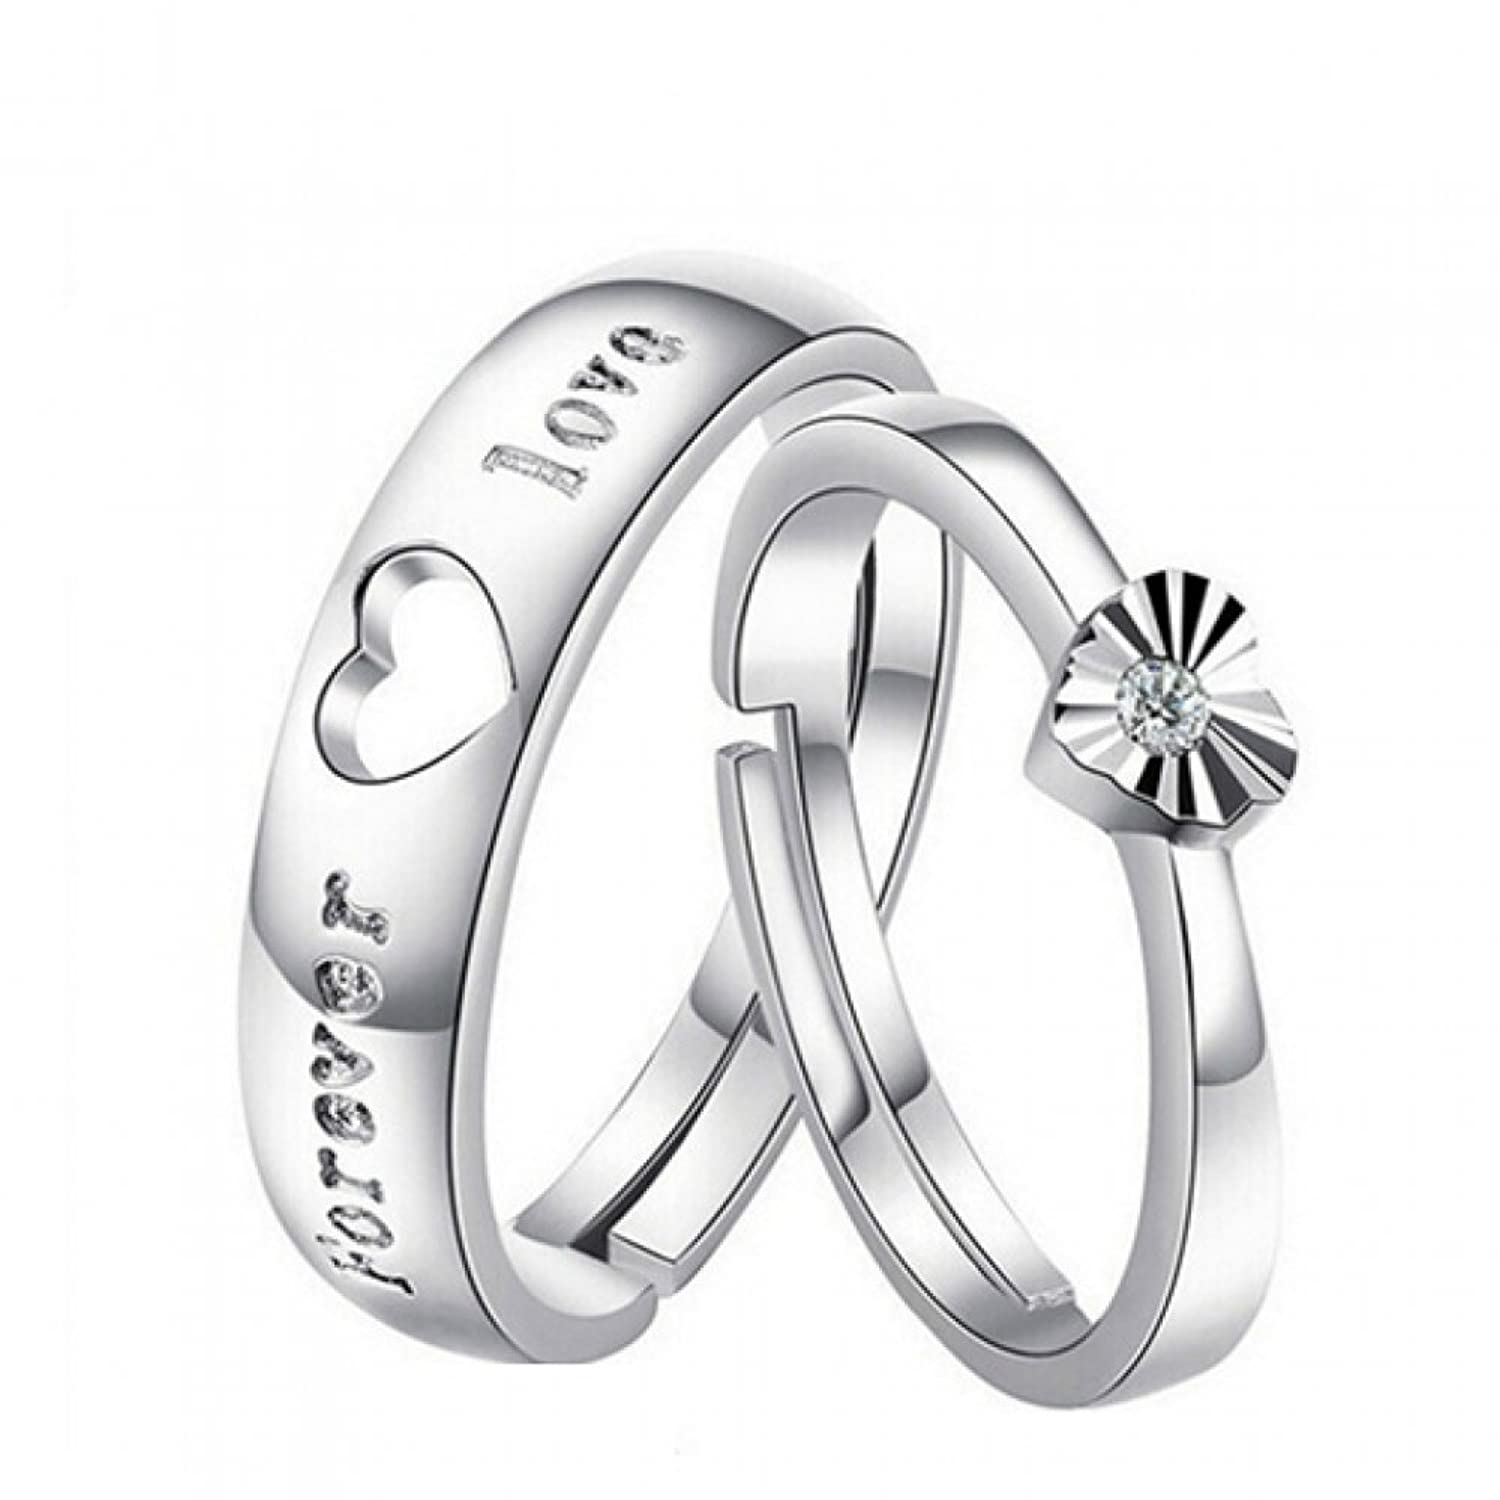 rings knot sterling engagement love infinity product endless size silver fashion